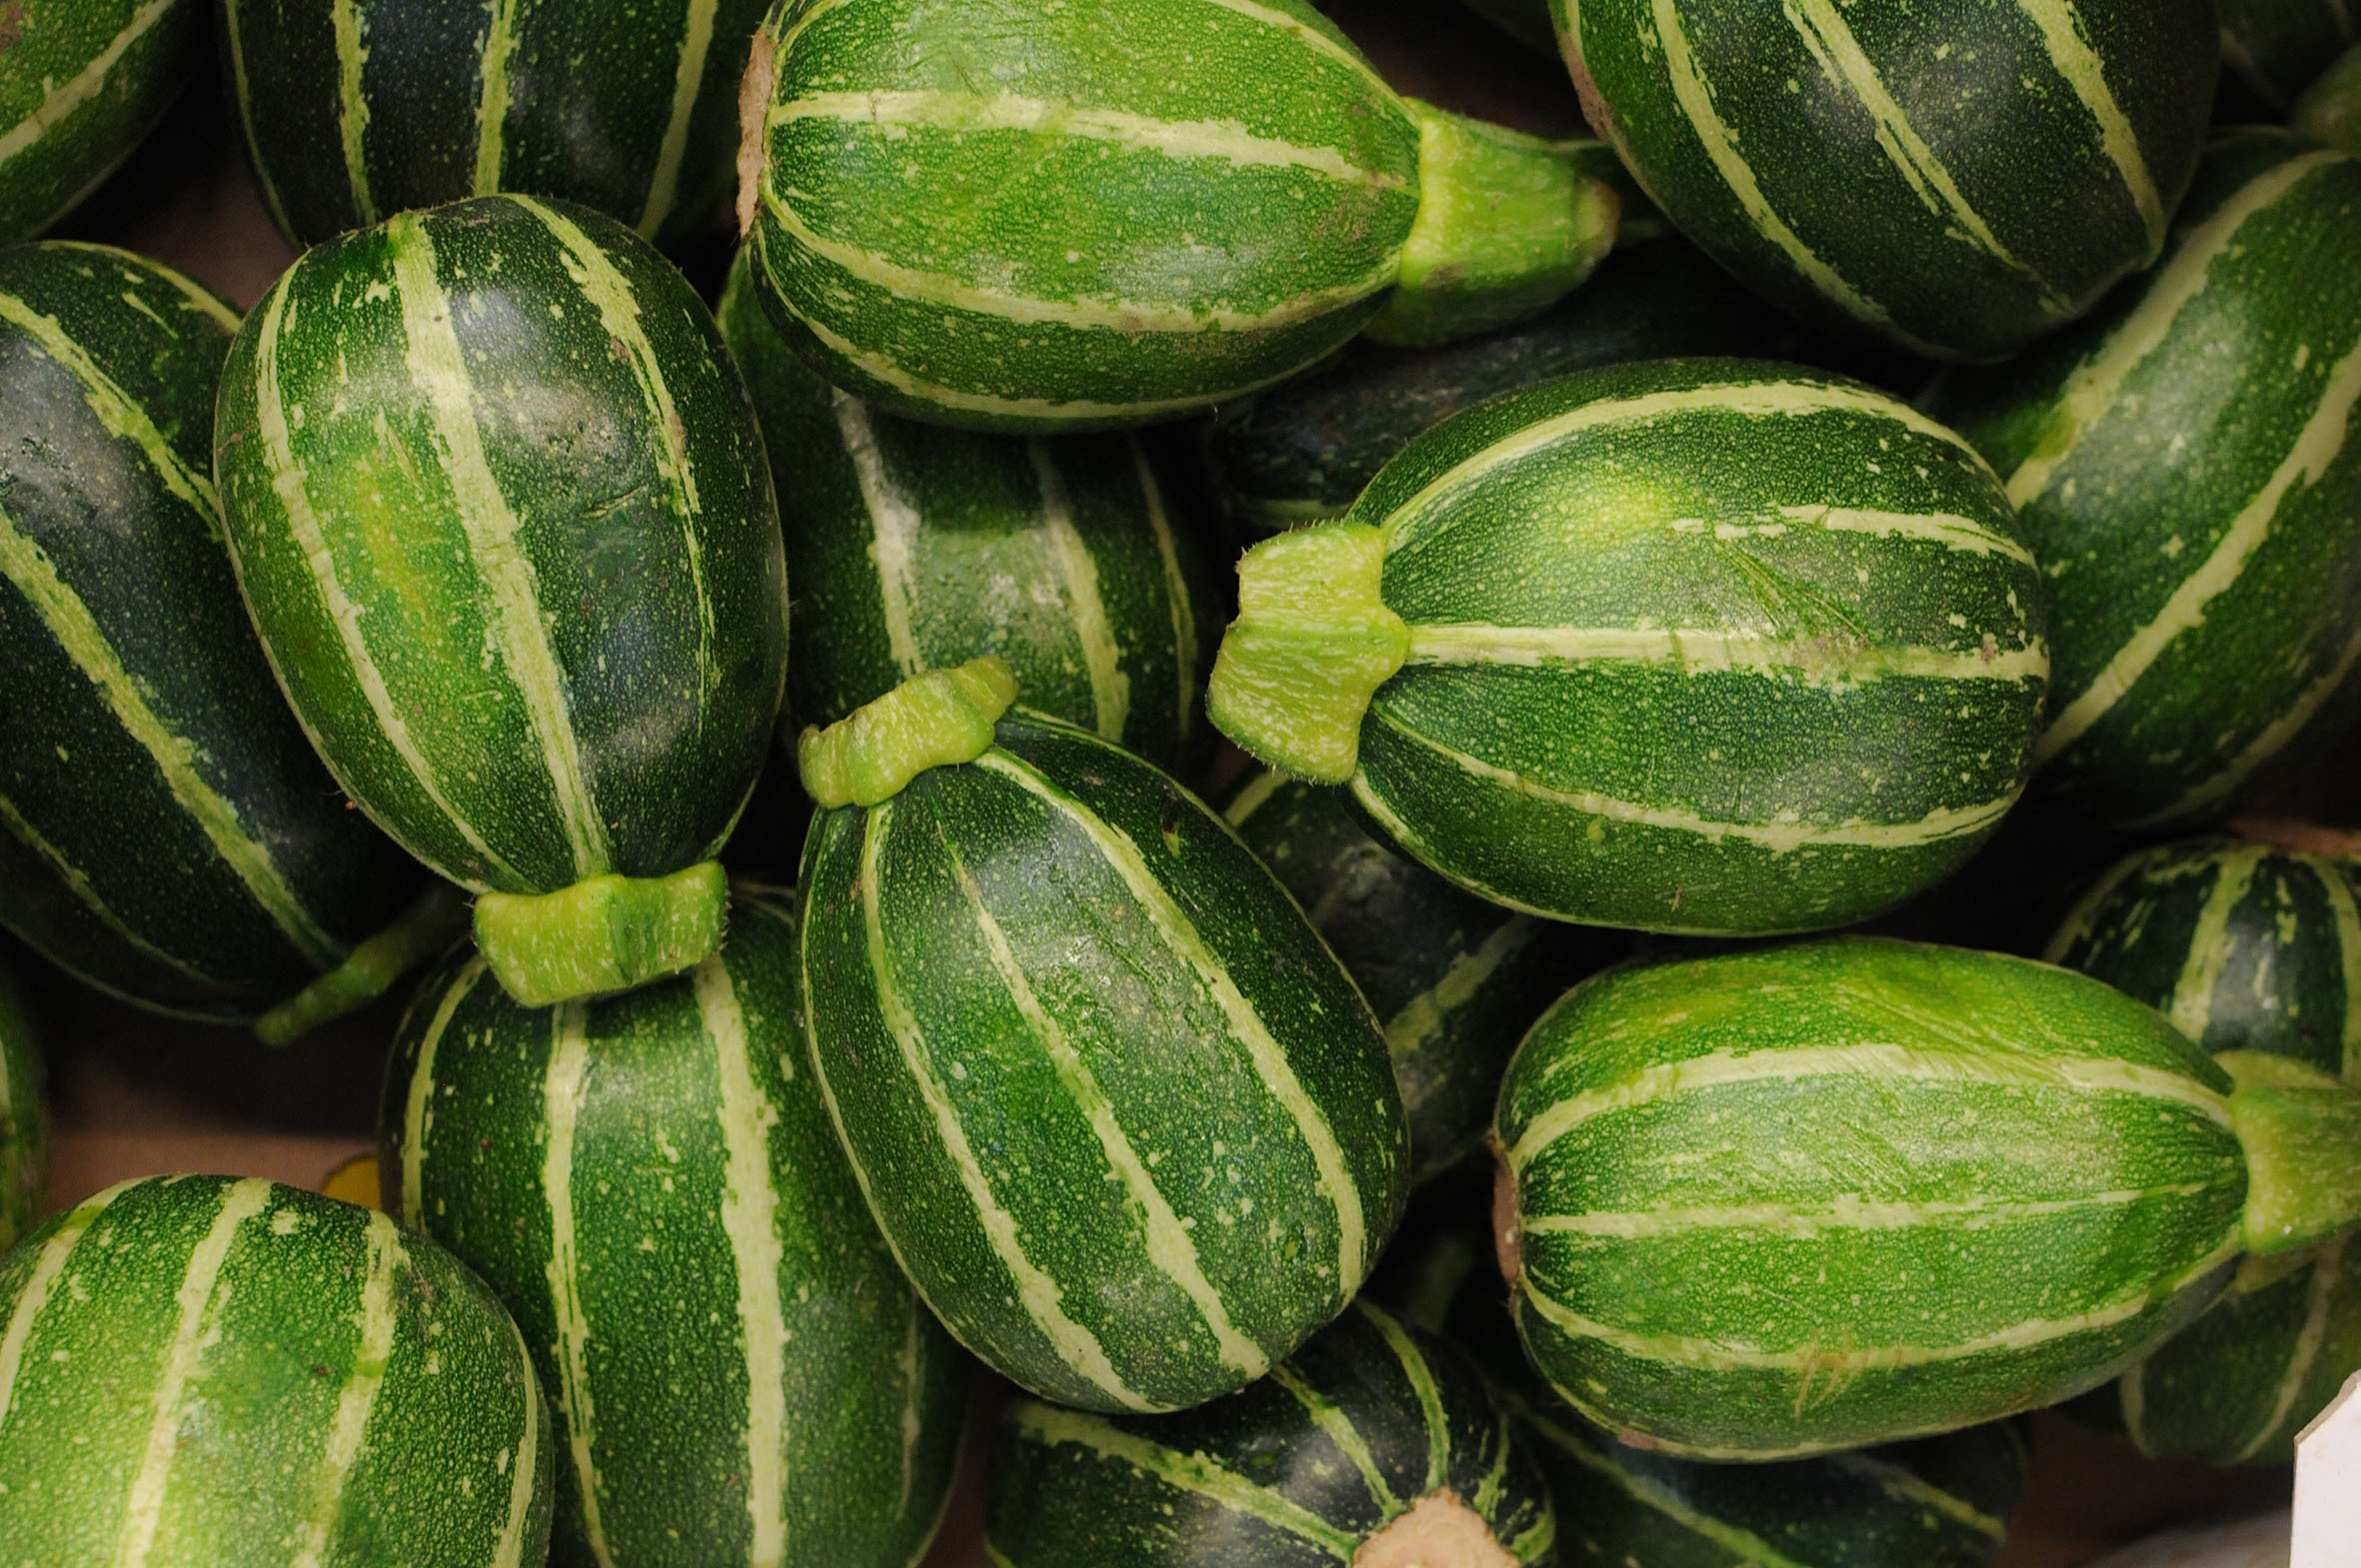 round_courgettes.jpg?mtime=20170922122217#asset:11452